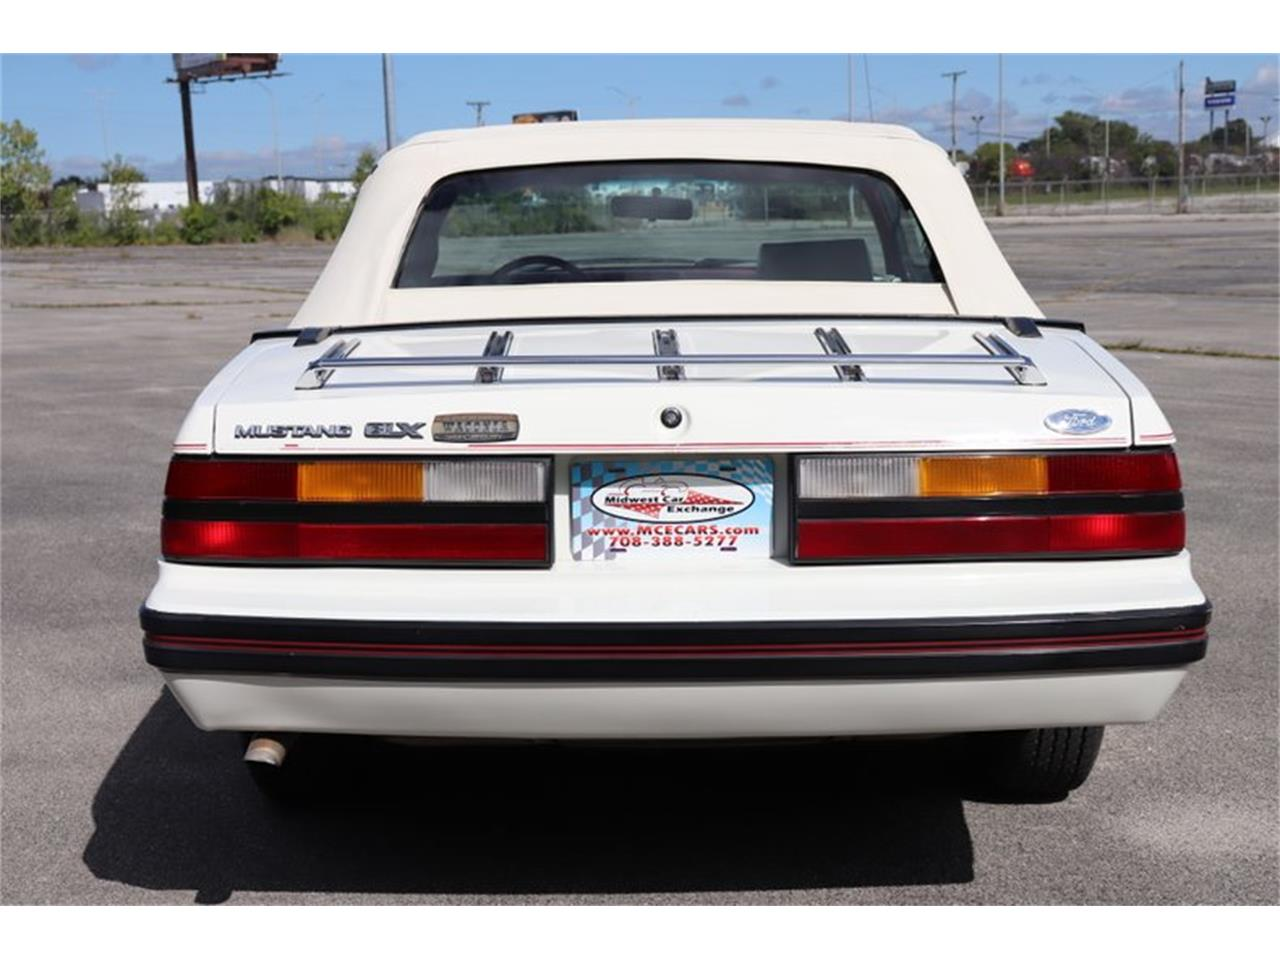 Large Picture of 1983 Mustang located in Illinois - $7,900.00 Offered by Midwest Car Exchange - OHLI